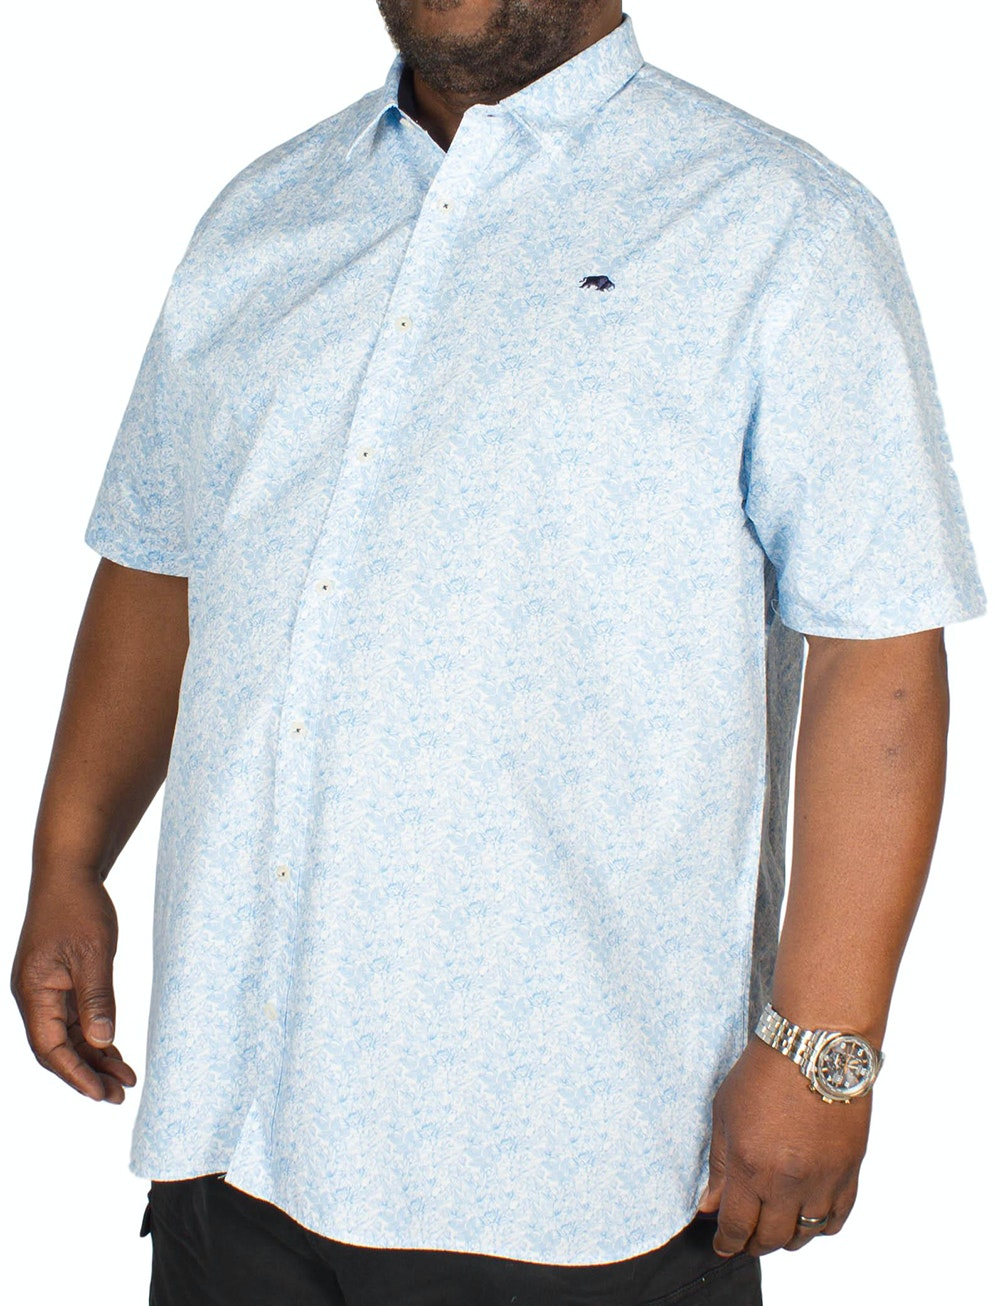 Raging Bull Micro Floral Shirt Blue/White